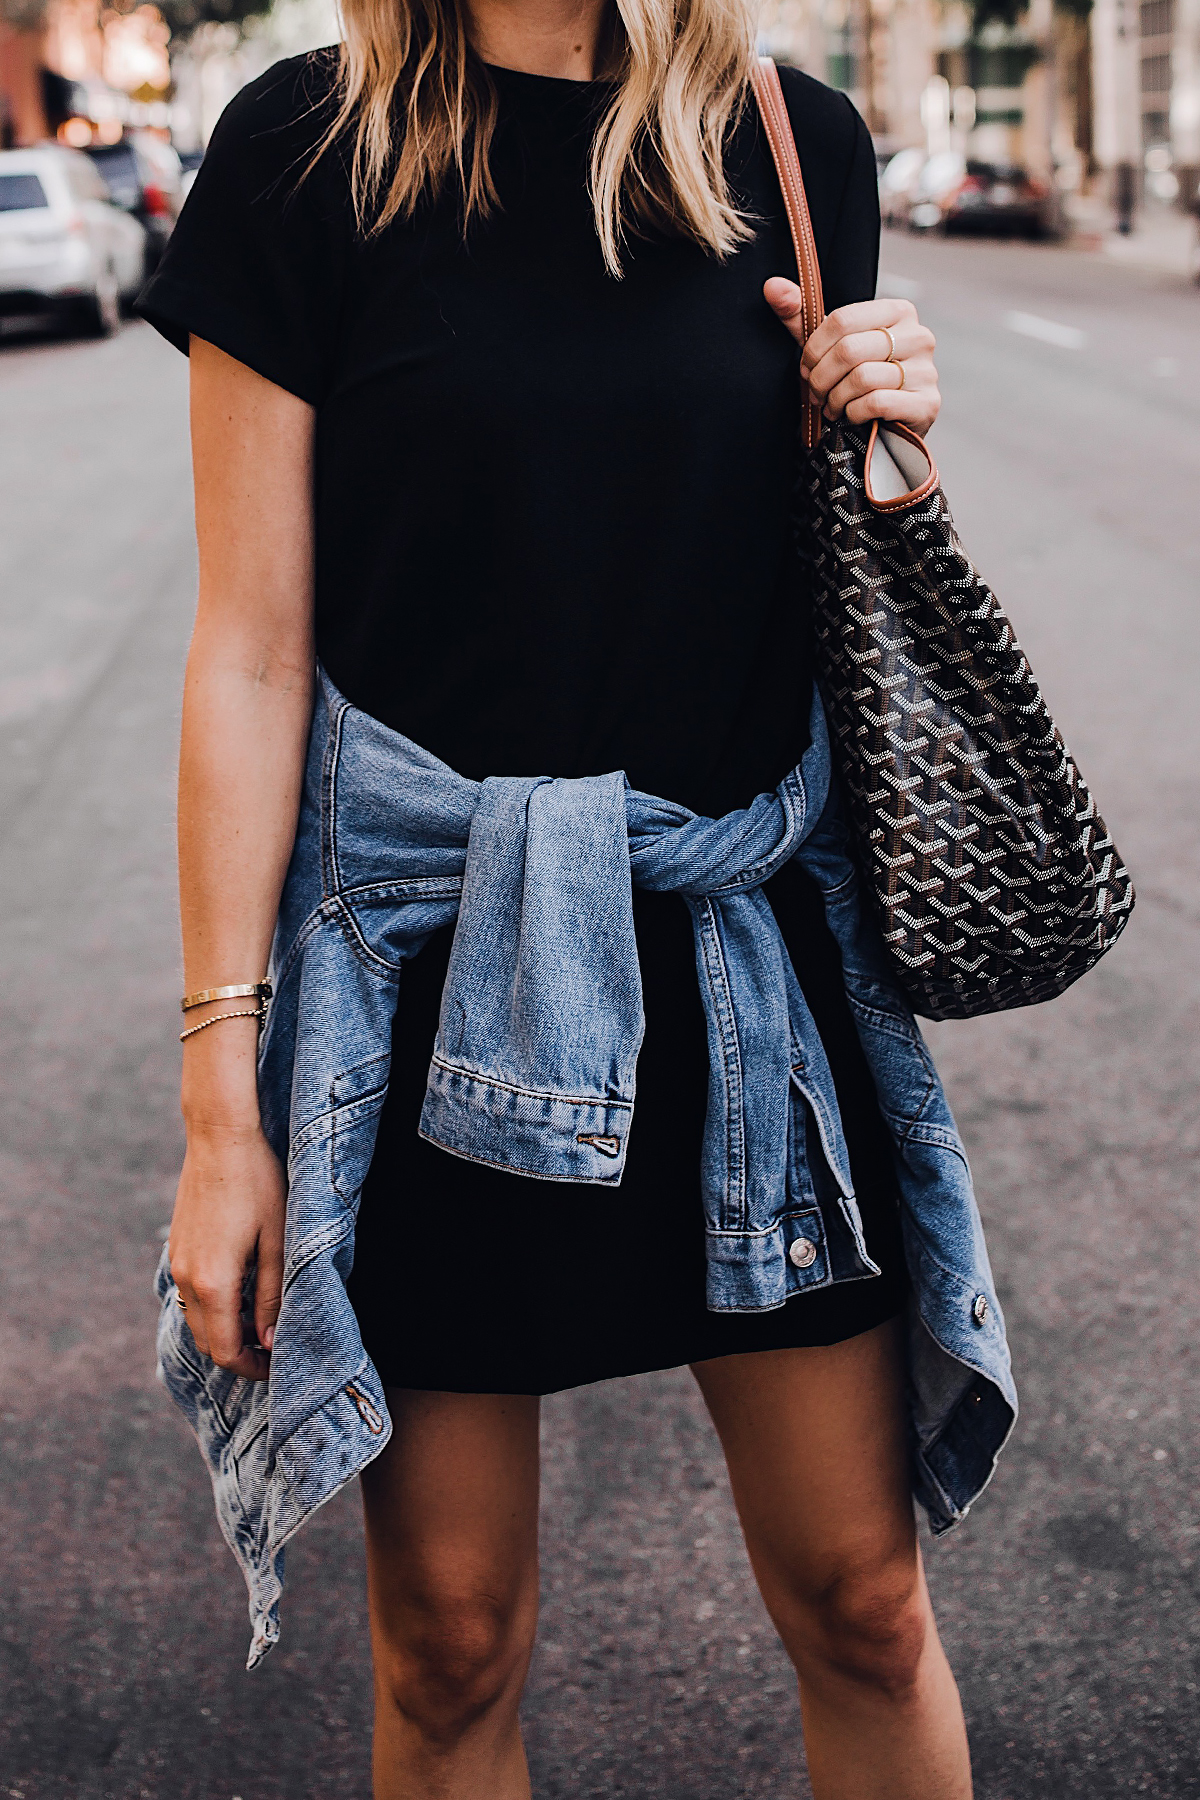 Blonde Woman Wearing Fashion Jackson Short Sleeve Black Dress Denim Jacket Goyard Tote Fashion Jackson San Diego Fashion Blogger Street Style